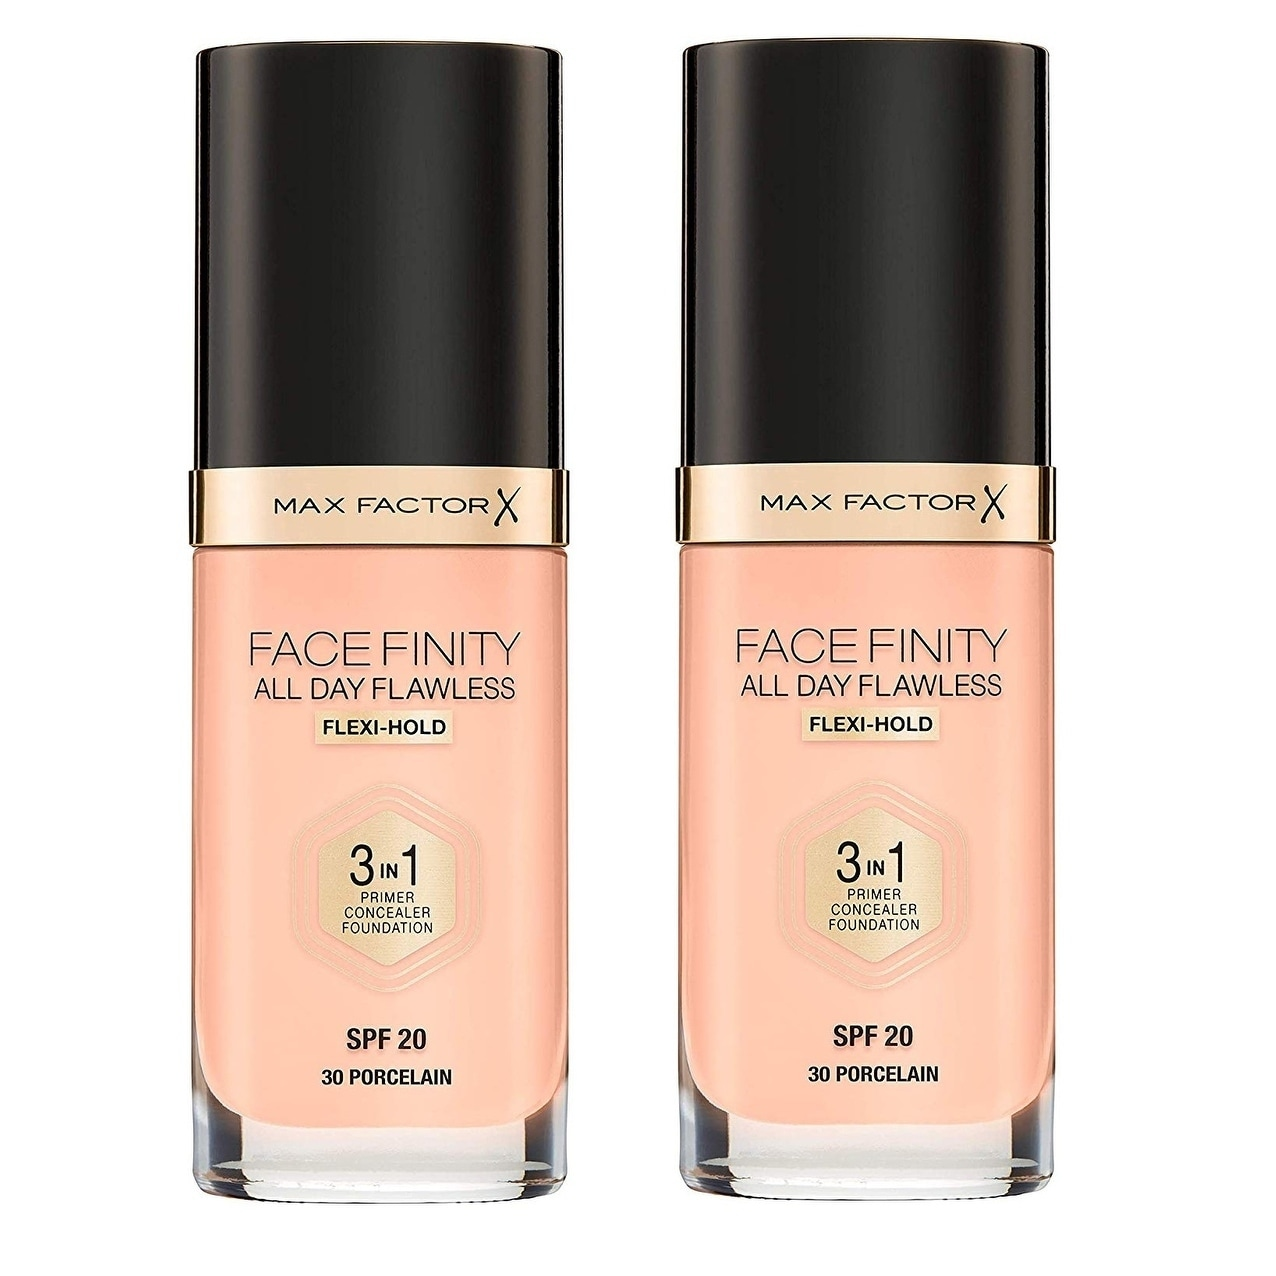 Max Factor FaceFinity All Day Flawless 3 in 1 Foundation, Primer and Concealer, SPF 20 Porcelain 30